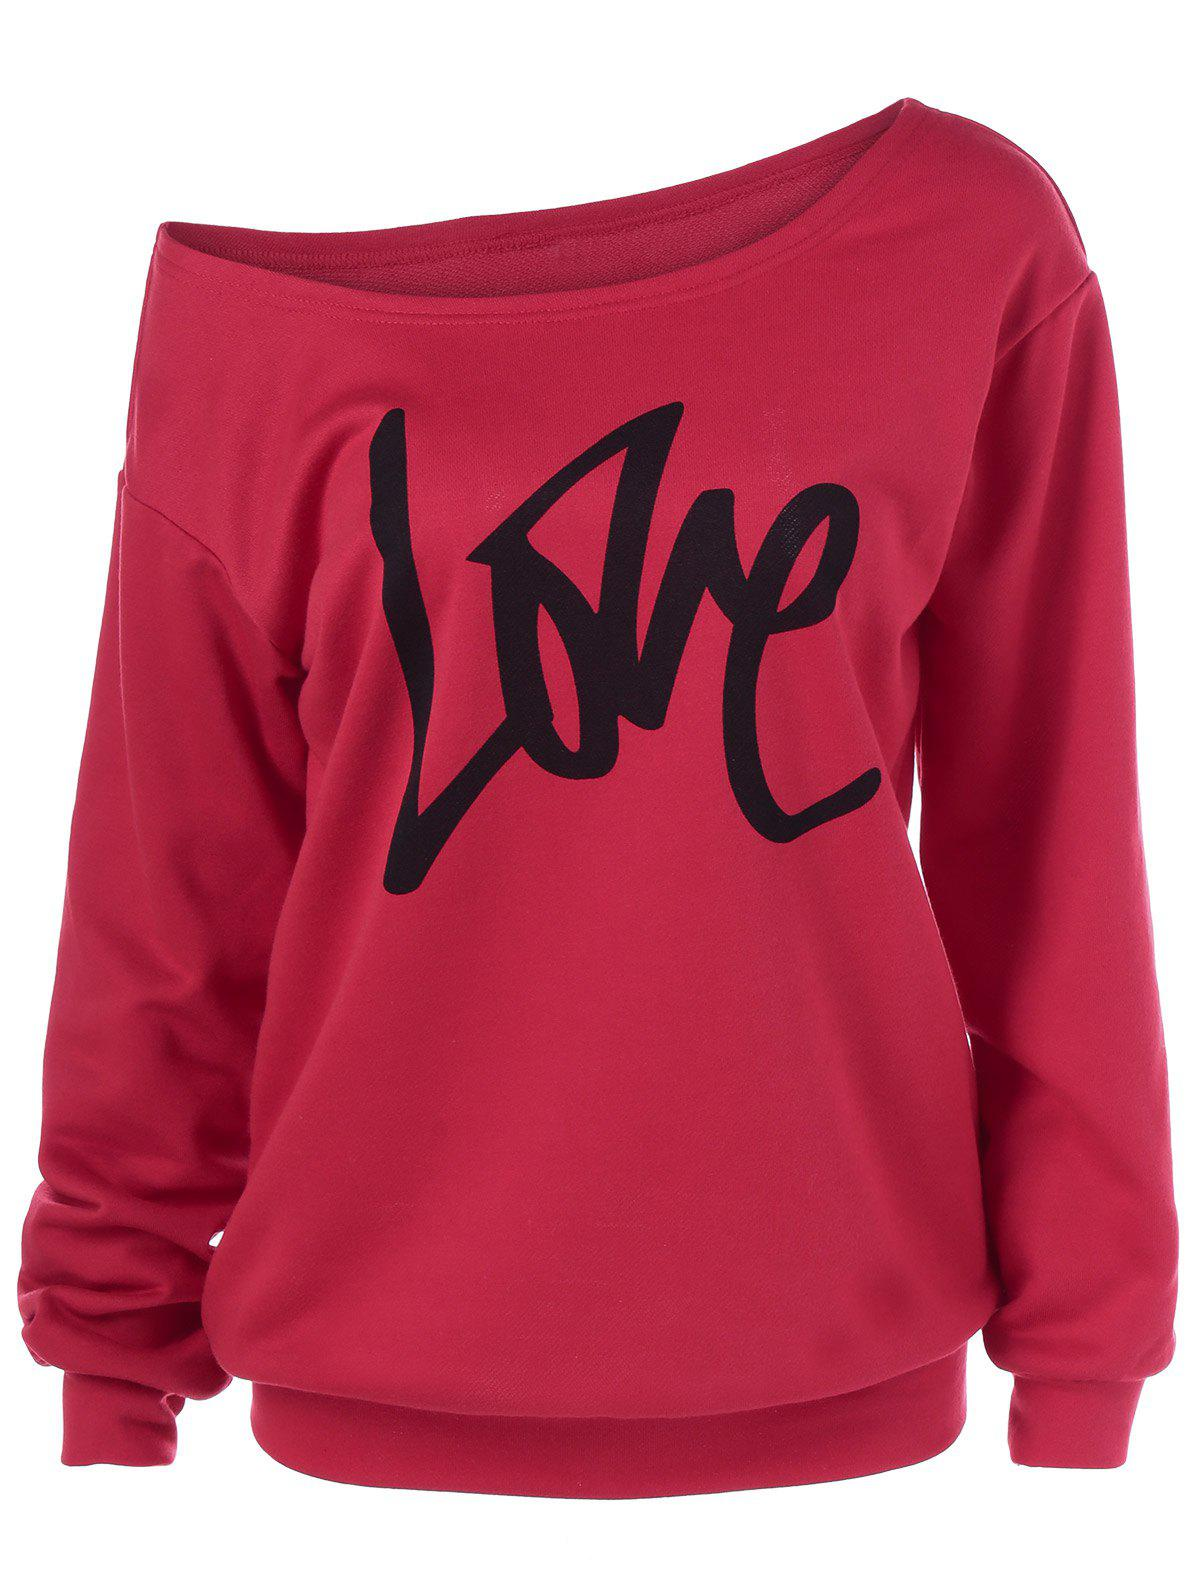 Skew Collar Love Plus Size SweatshirtWOMEN<br><br>Size: 2XL; Color: RED; Material: Polyester; Shirt Length: Regular; Sleeve Length: Full; Style: Casual; Pattern Style: Letter; Season: Fall,Spring; Weight: 0.3800kg; Package Contents: 1 x Sweatshirt;